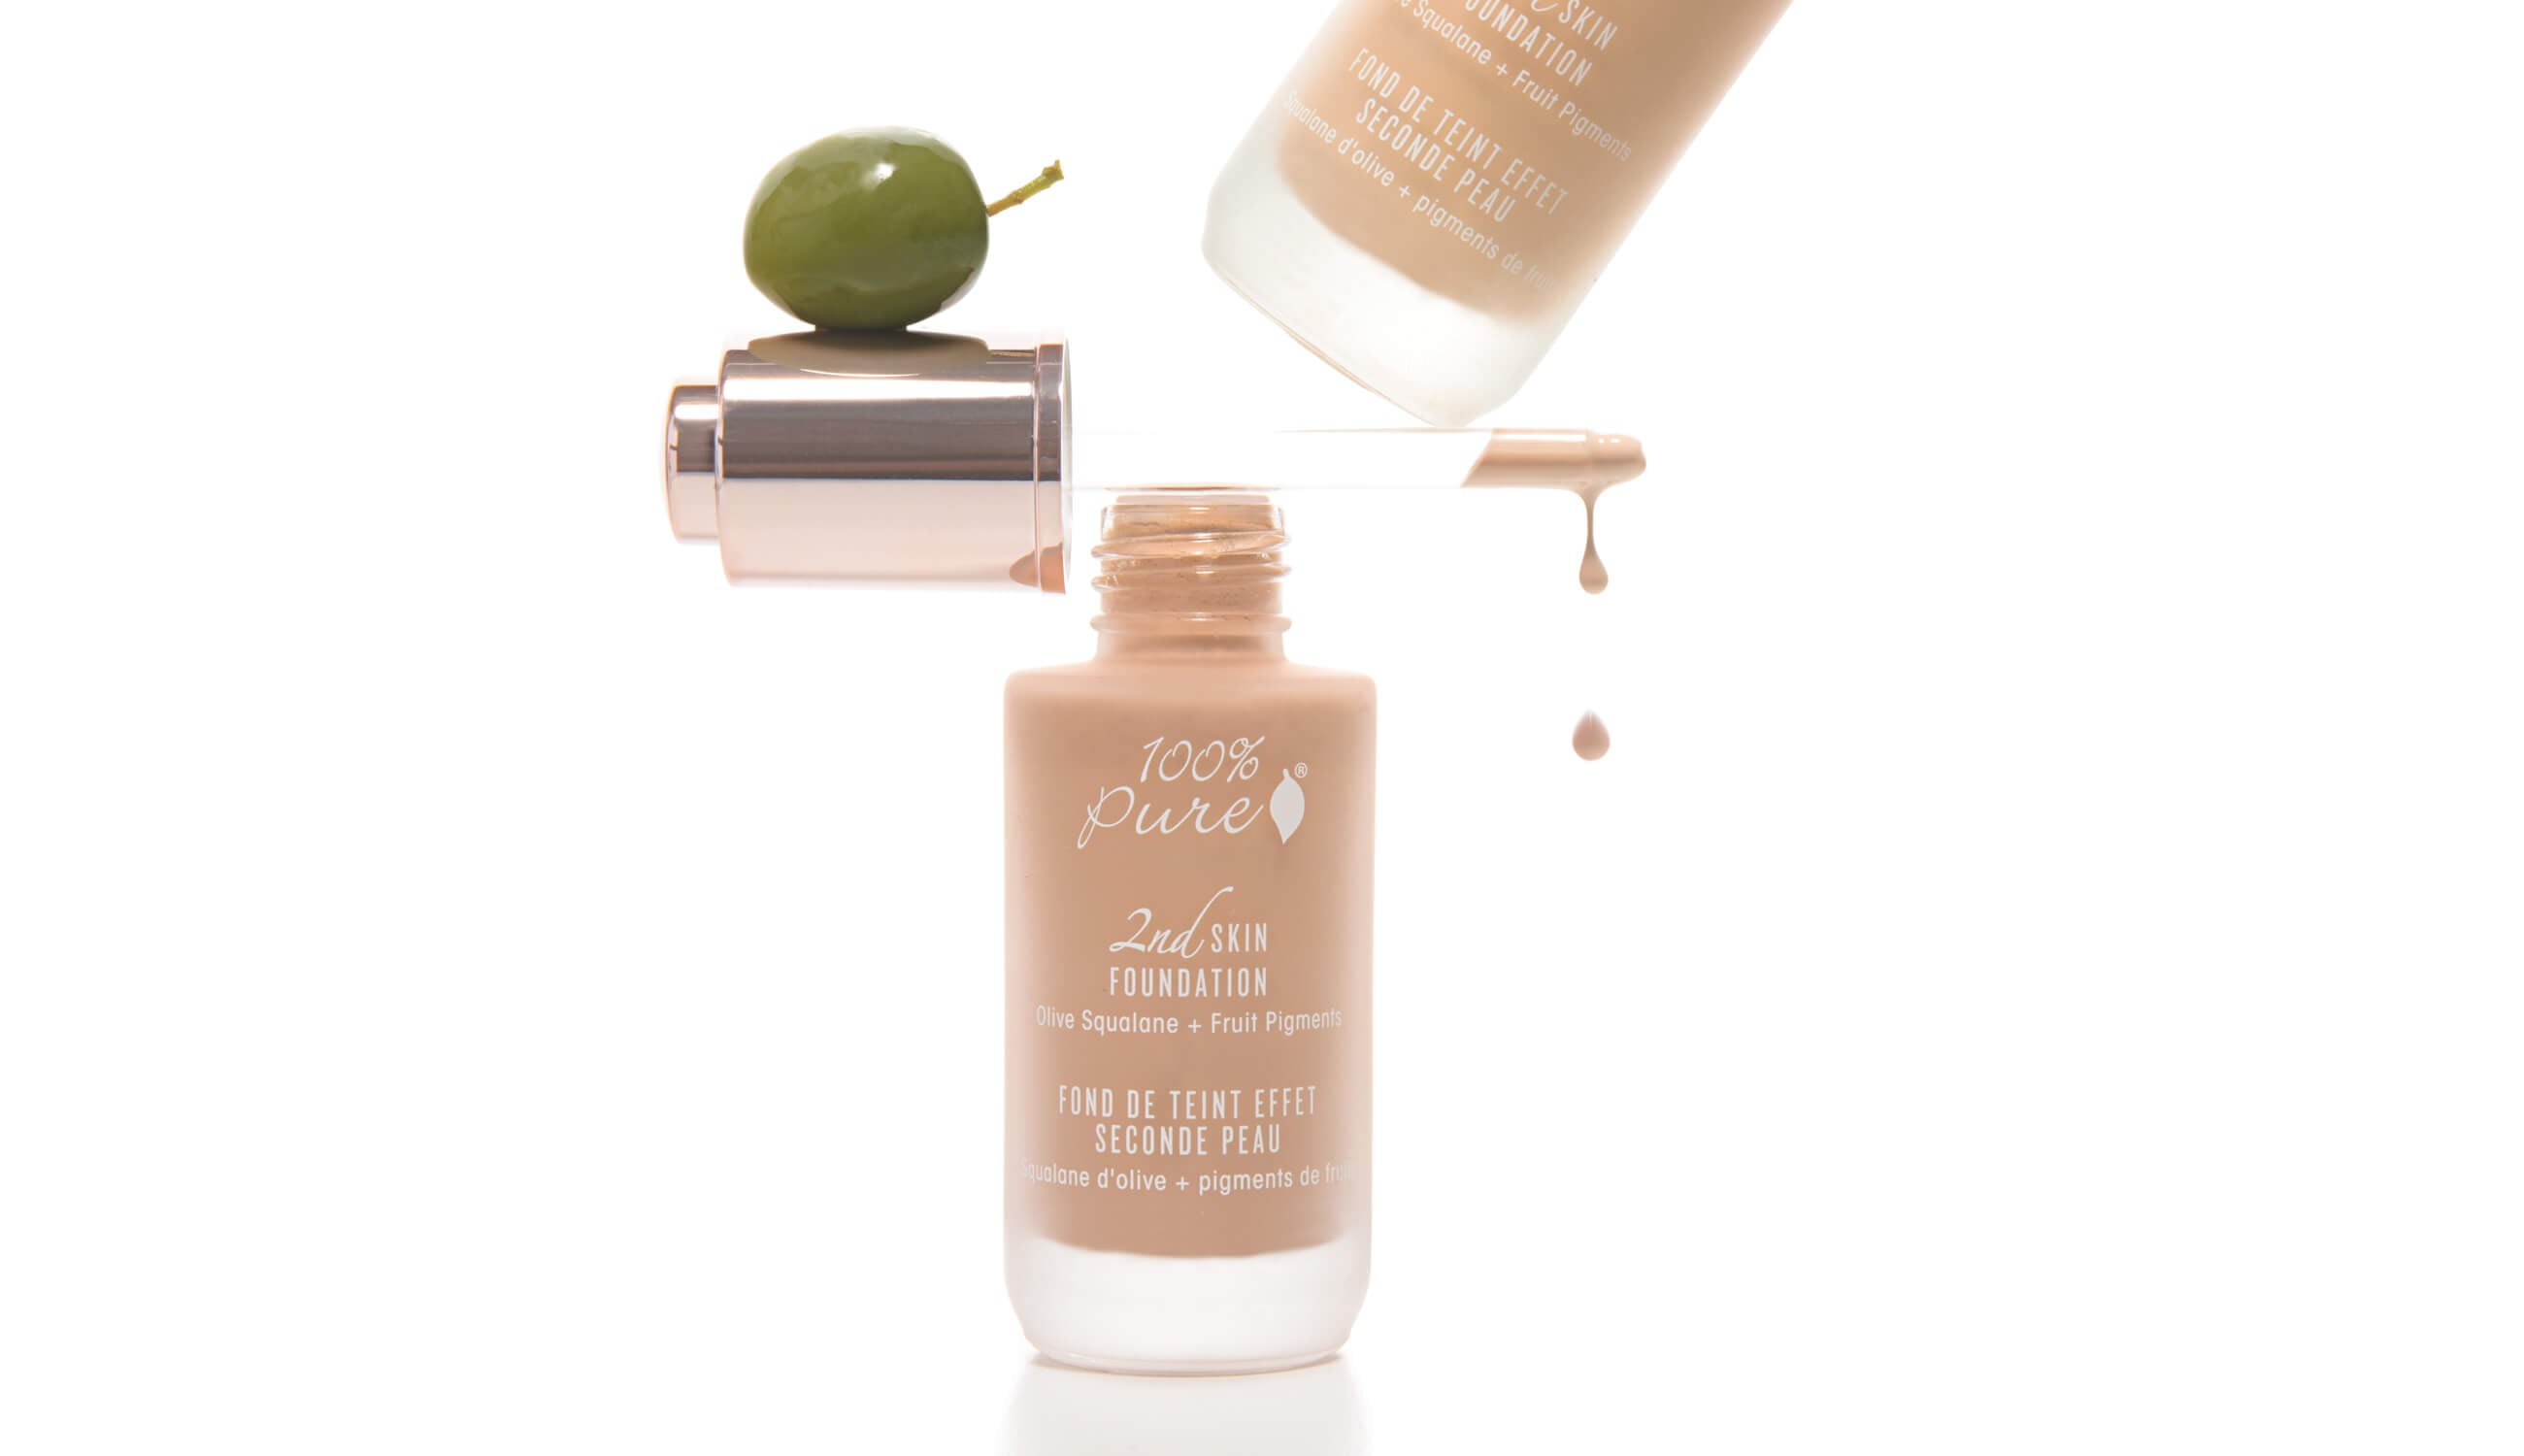 100% PURE Second Skin Foundation